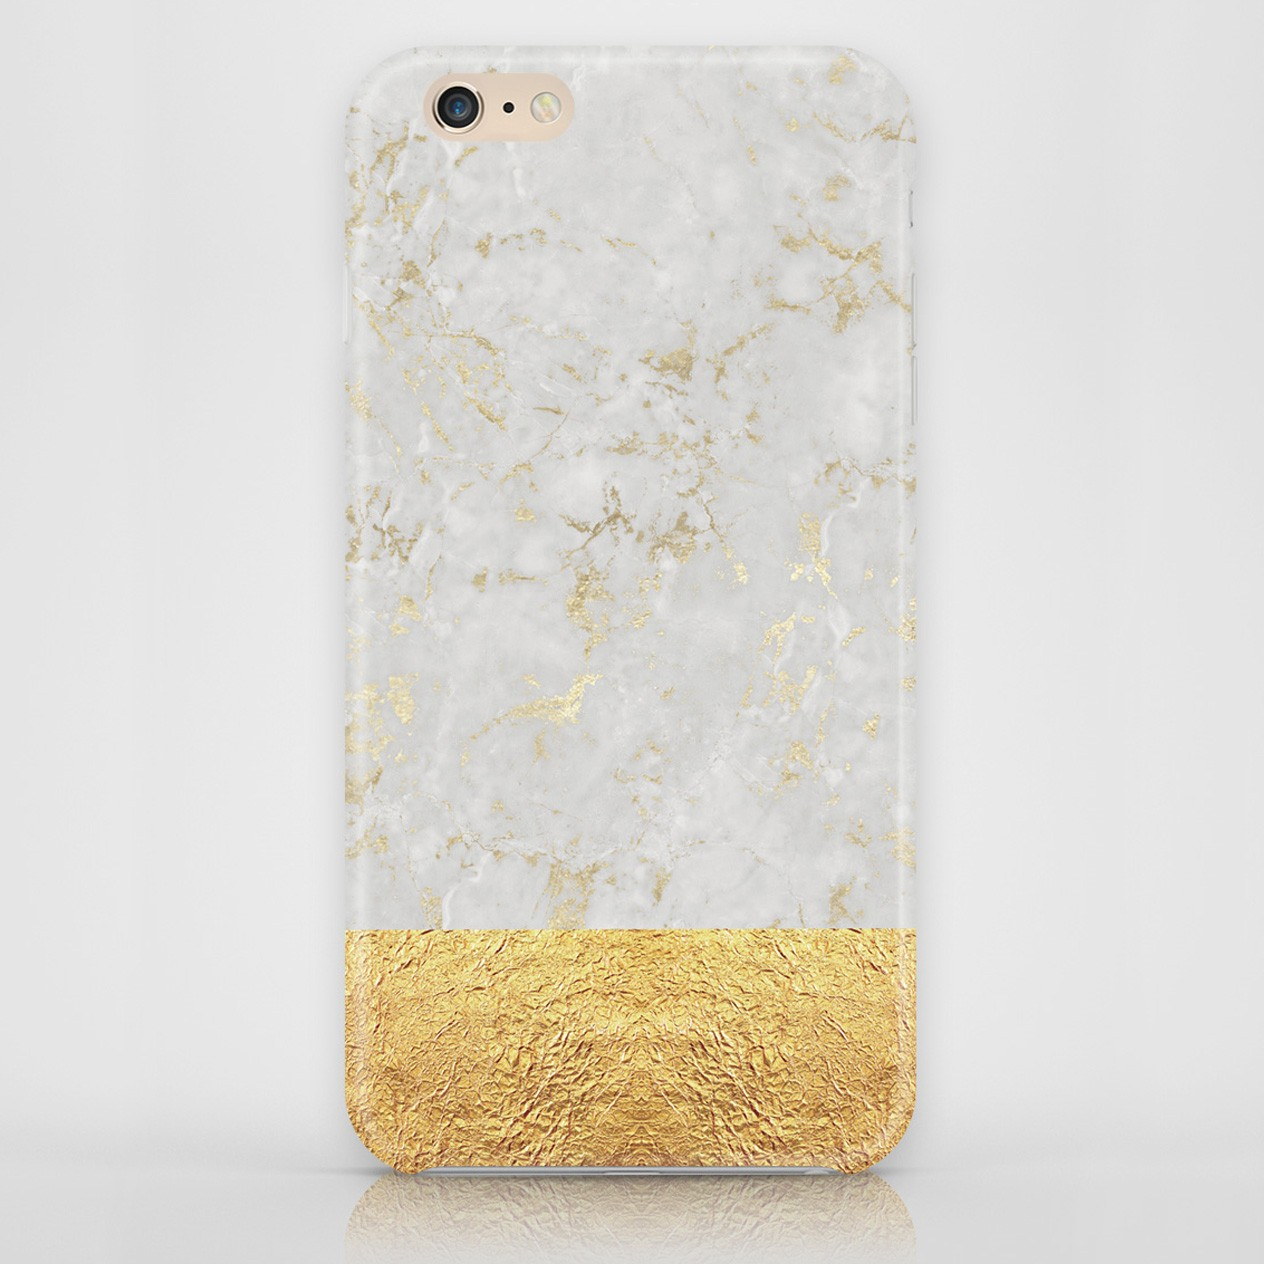 Etui Golden marble - 81488